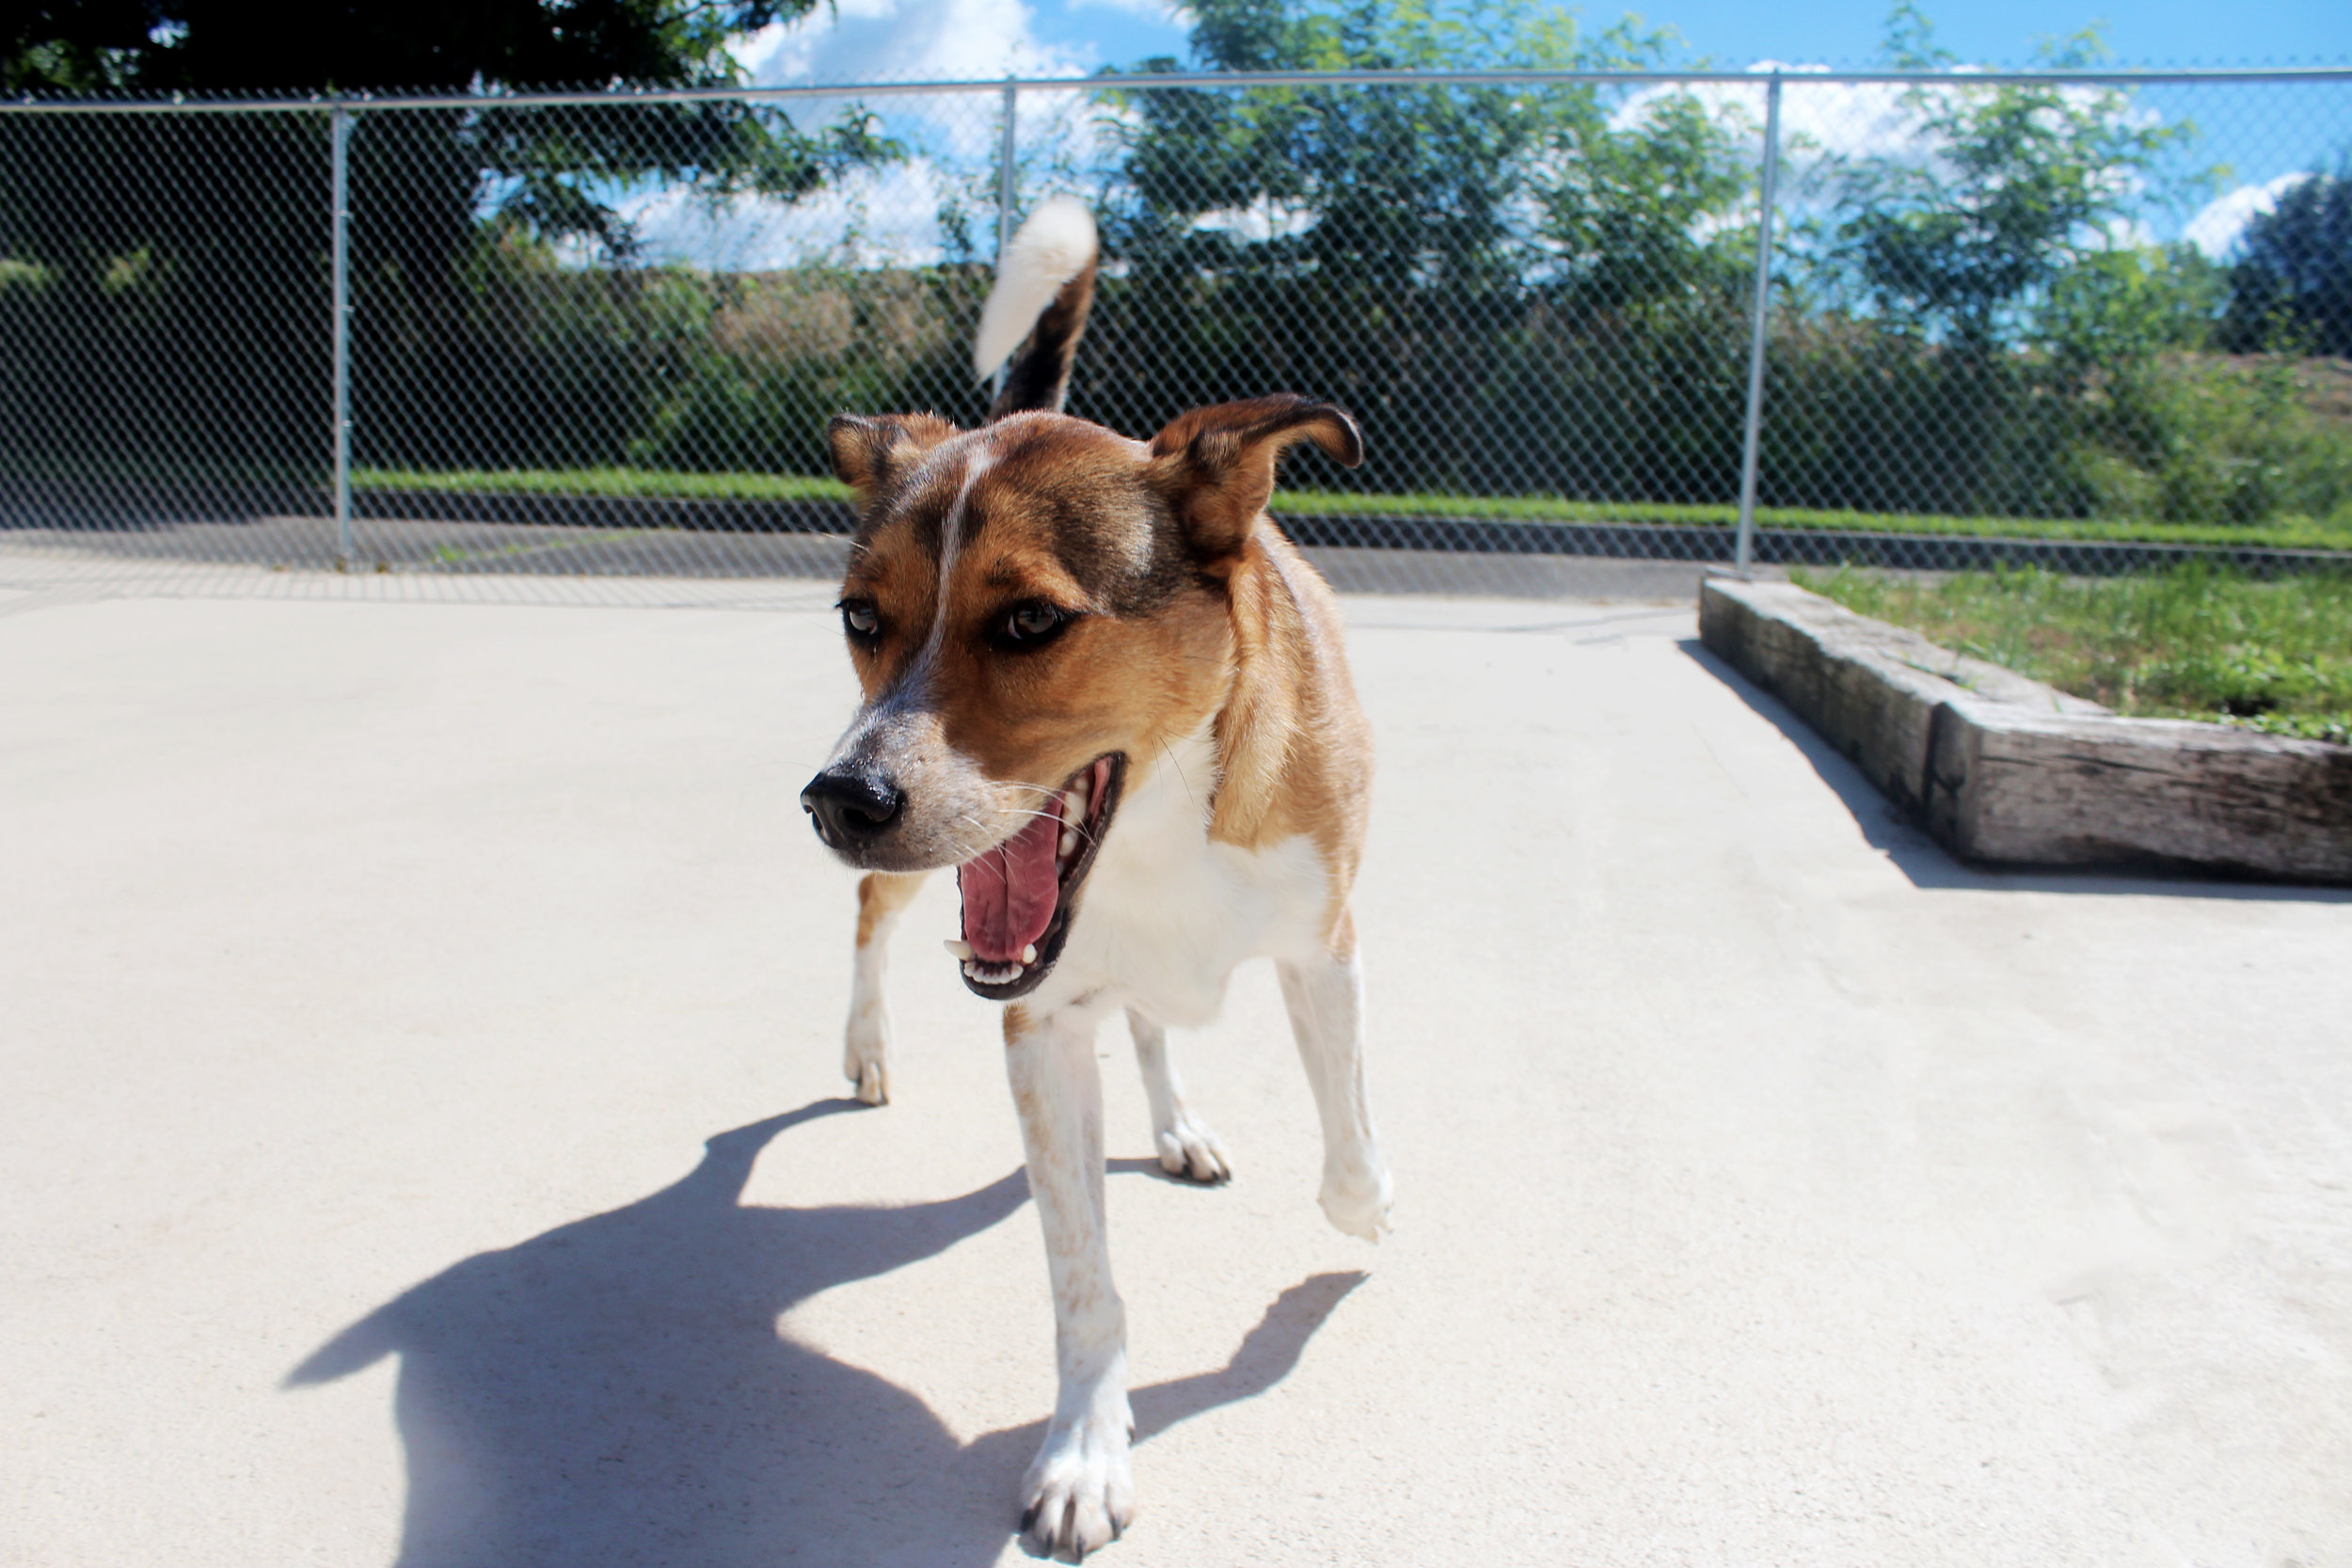 Just looking at Maple's face can give you a good understanding of the type of dog she is. Always happy running around with her daycare friends she is just a great dog to be around. Although she may be smaller than she looks she can hold her own against bigger dogs. That's why Maple is so special.